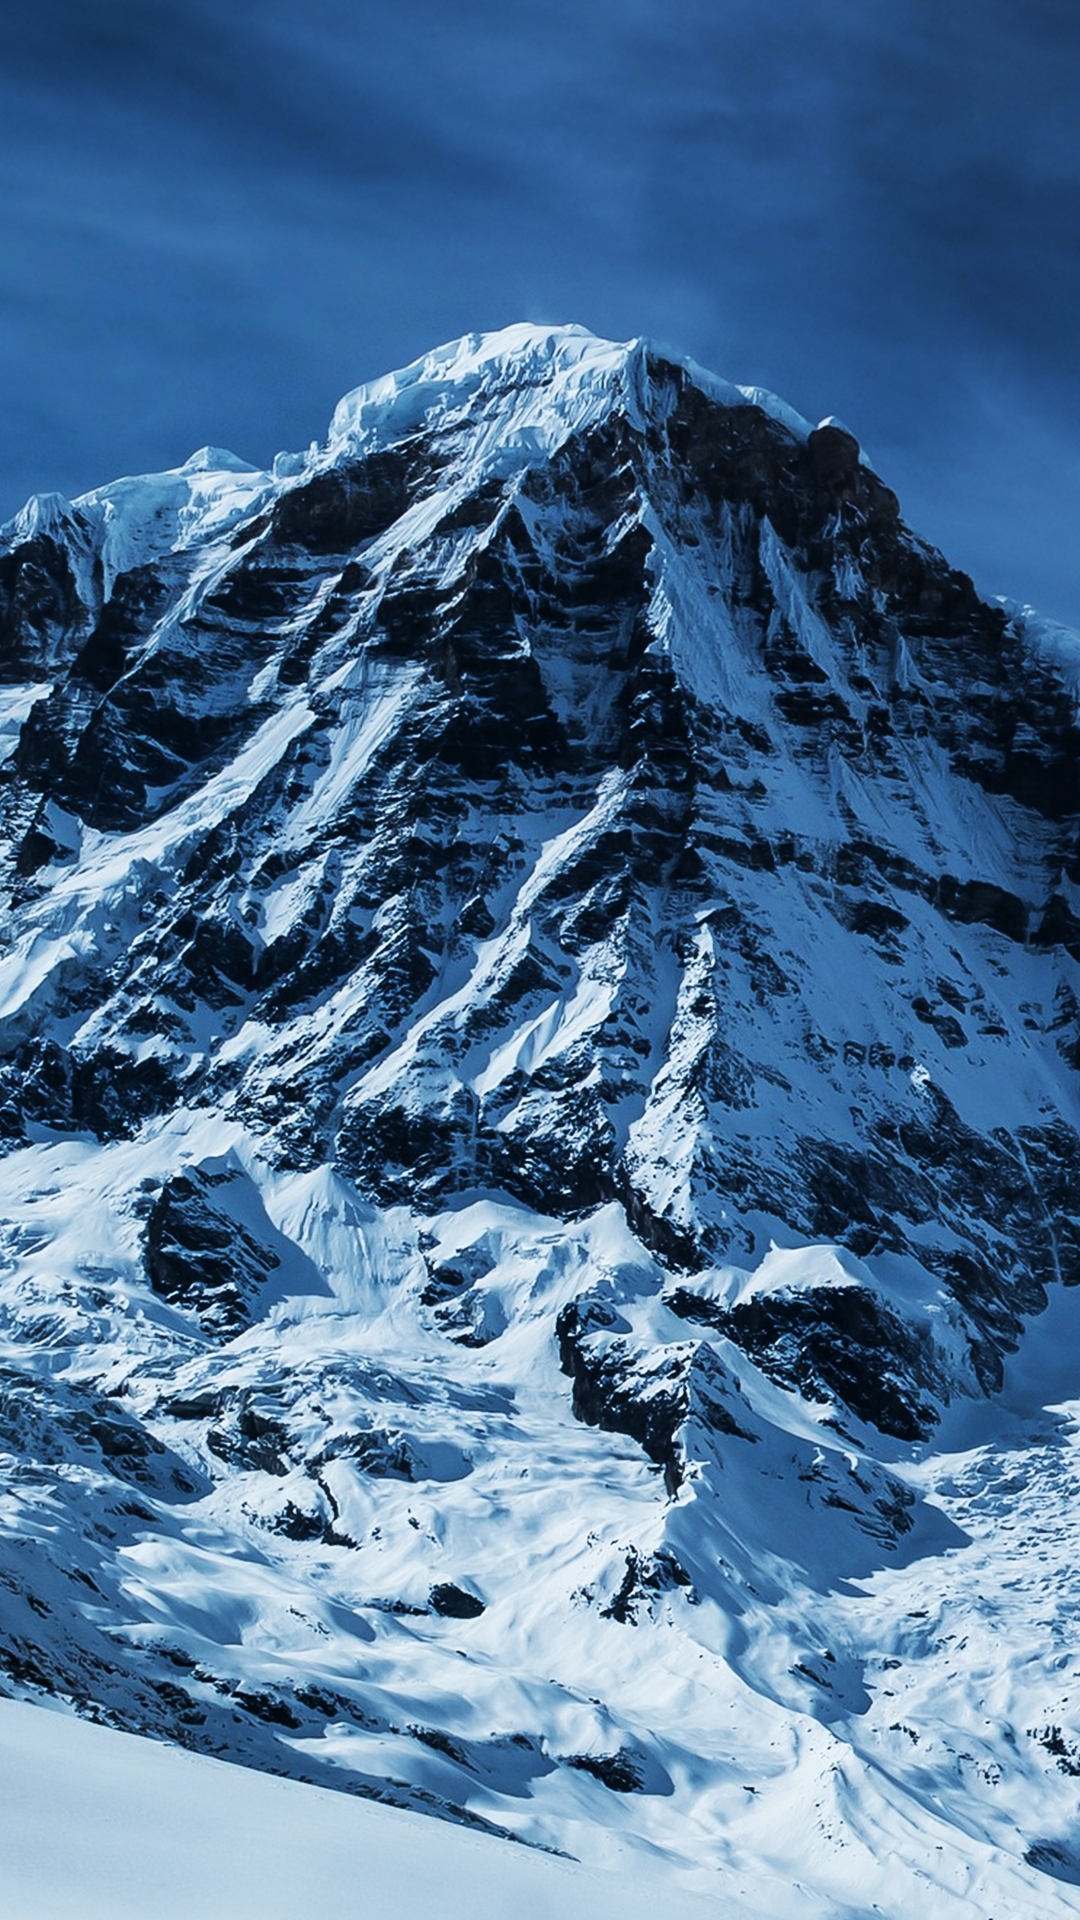 Best Wallpaper Mountain Smartphone - mountain-peak-1168  2018_129964.jpg